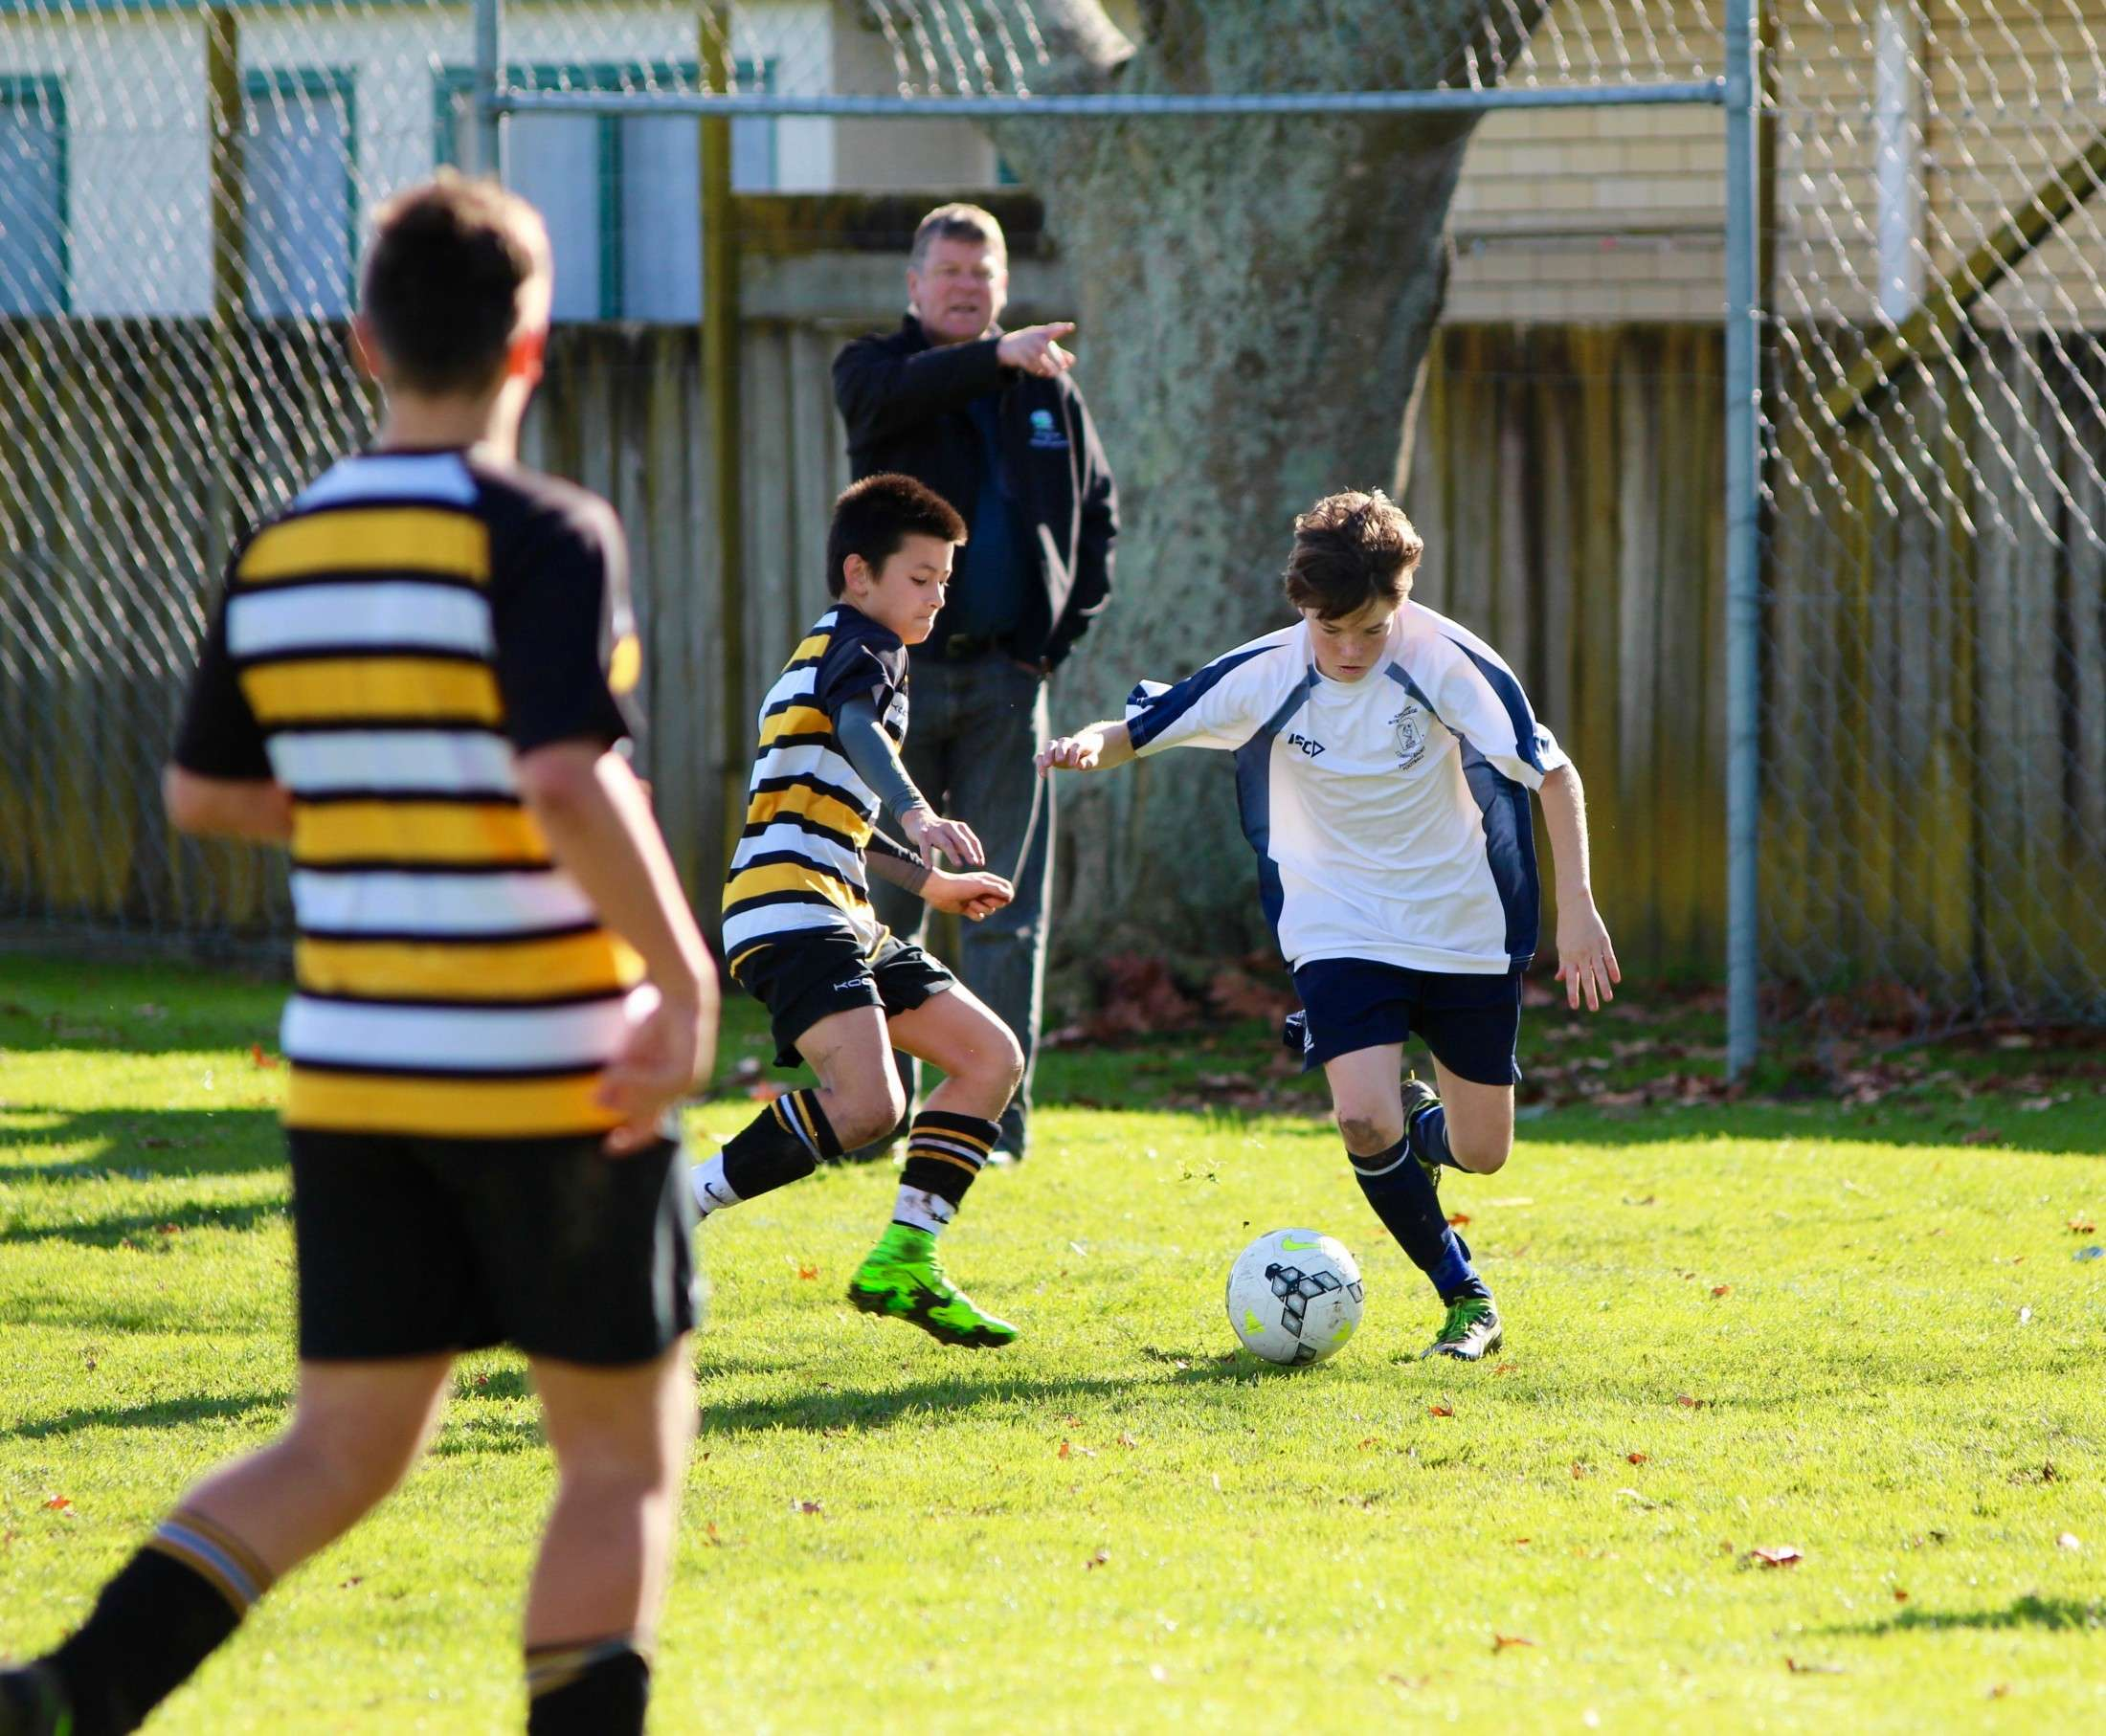 Football - How to get involved - Titan Sports  -  Tauranga Boys' College